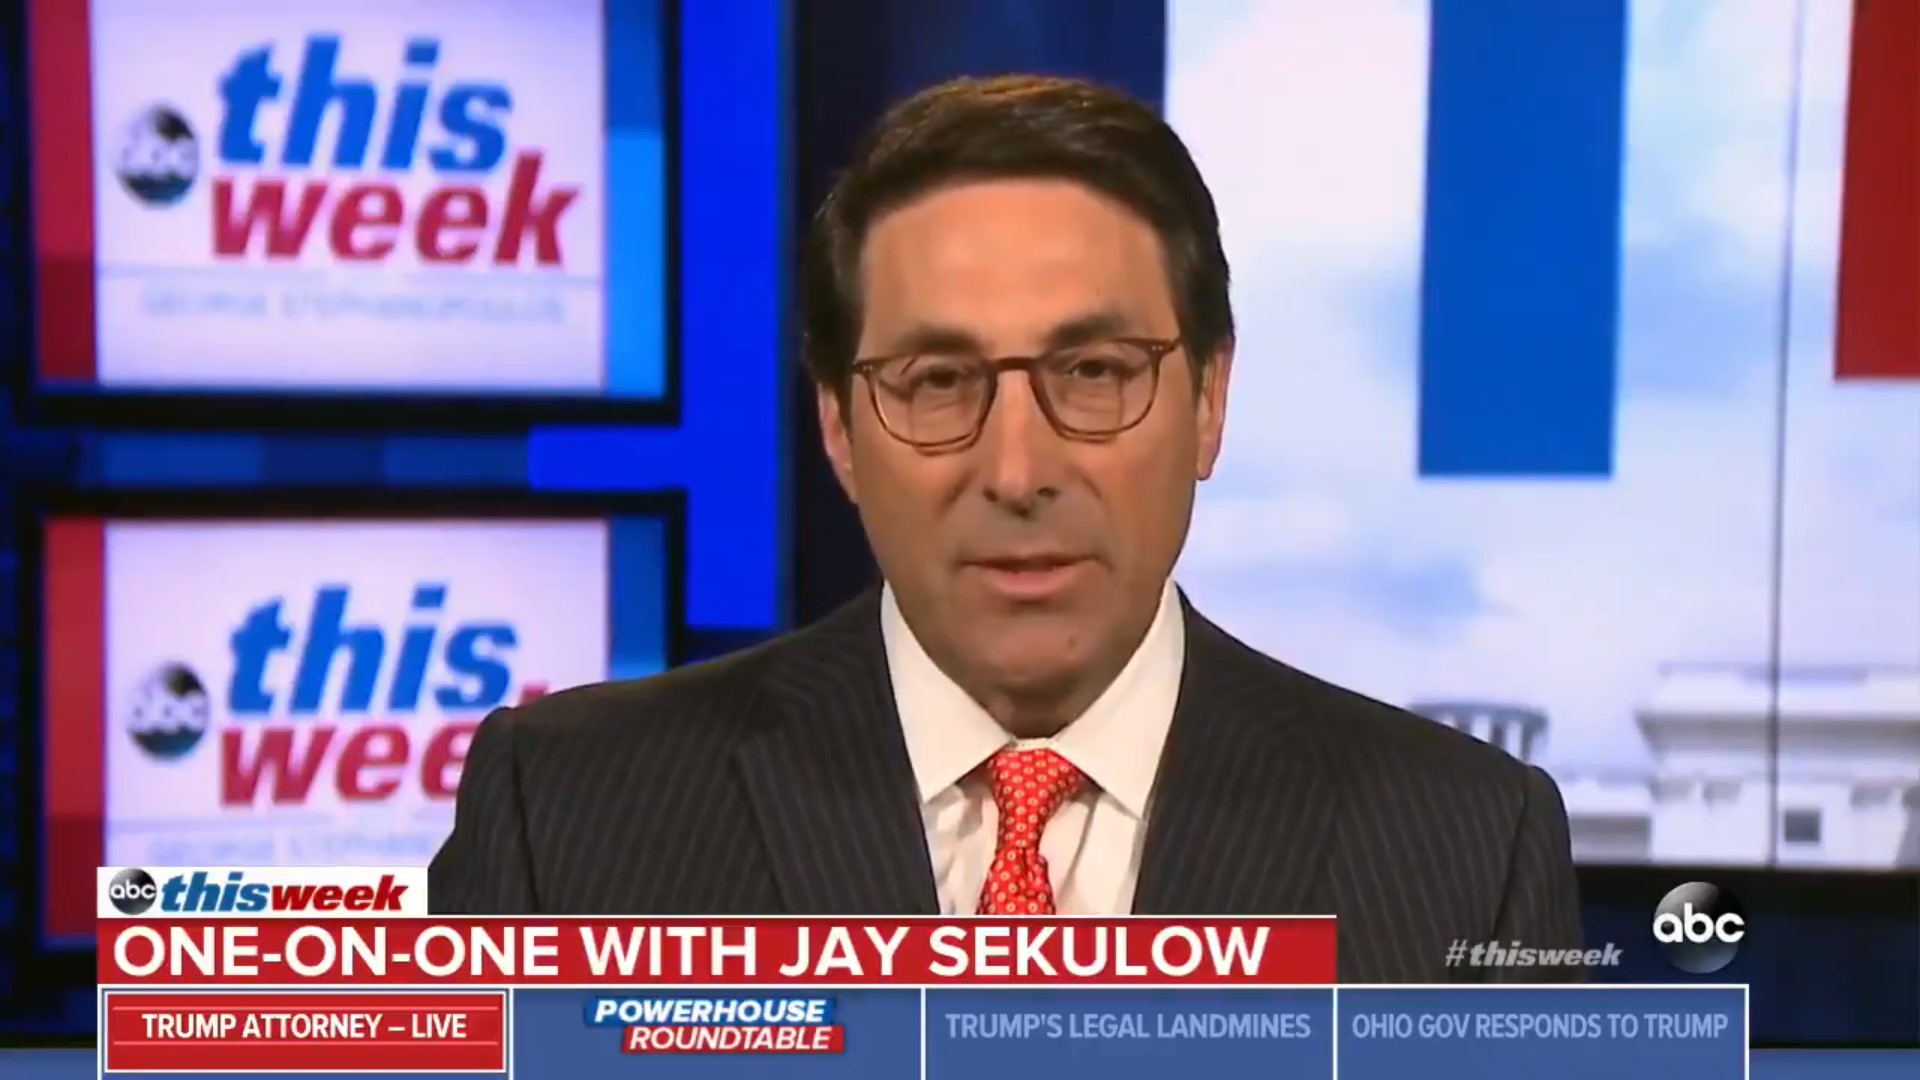 Jay Sekulow On His False Claims That Trump Didn't Dictate Don Jr Statement: 'I Had Bad Information'